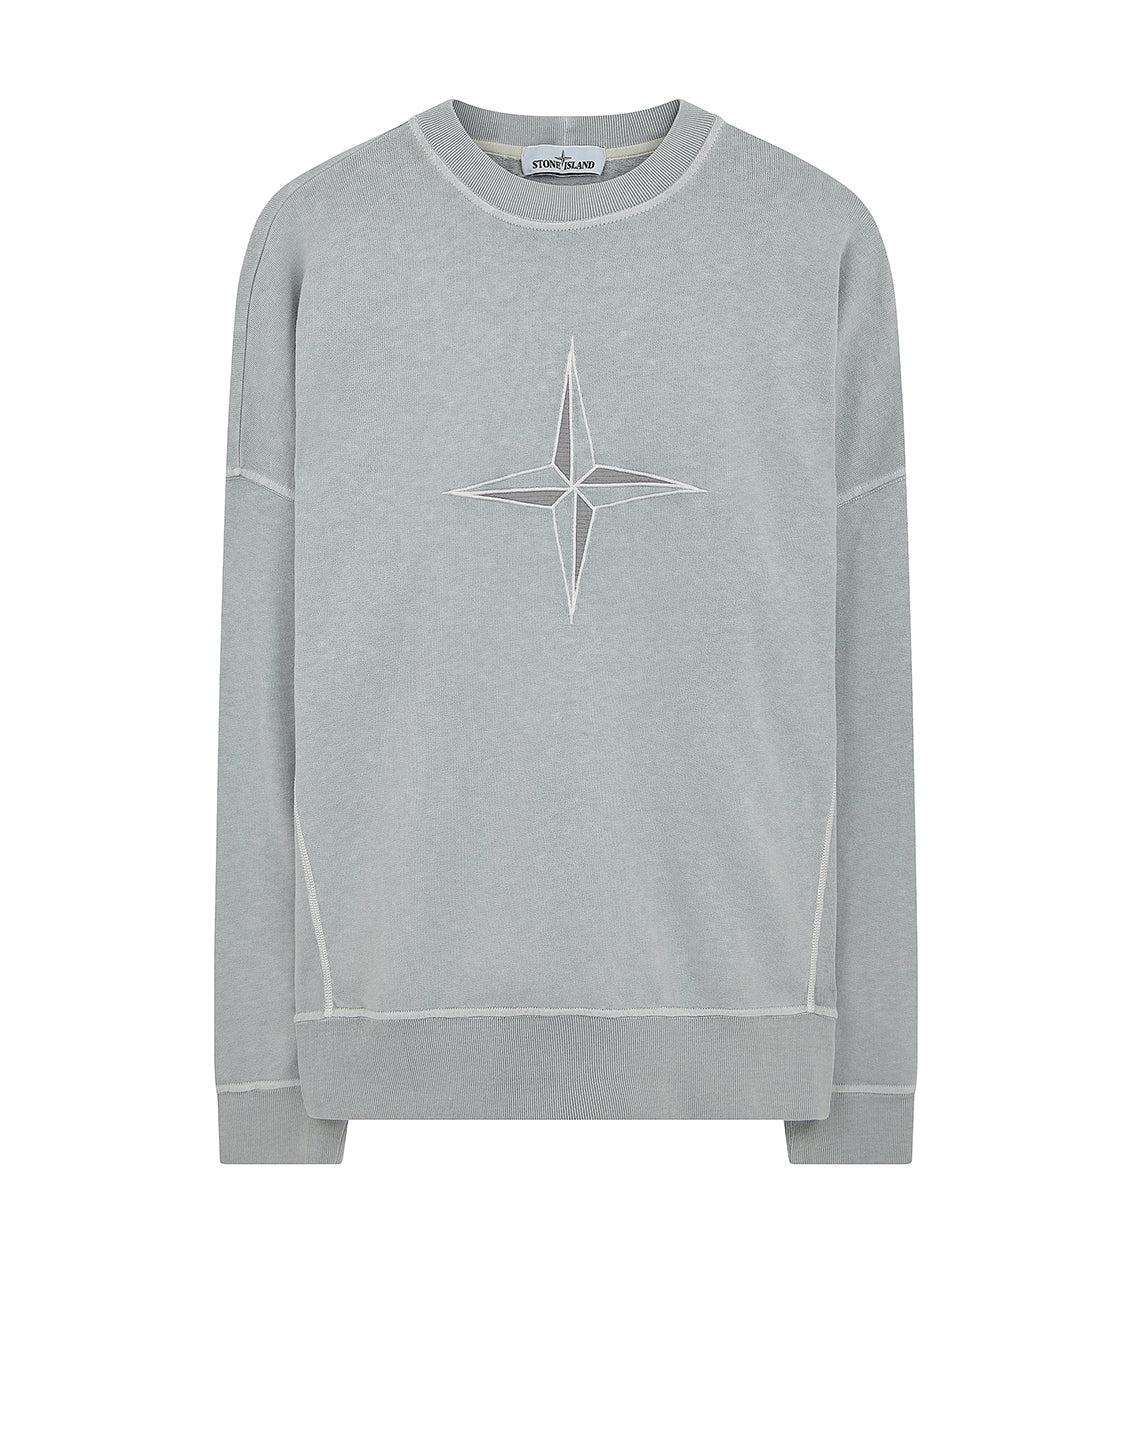 61261 'OLD' DYE TREATMENT Sweatshirt in Pearl Grey